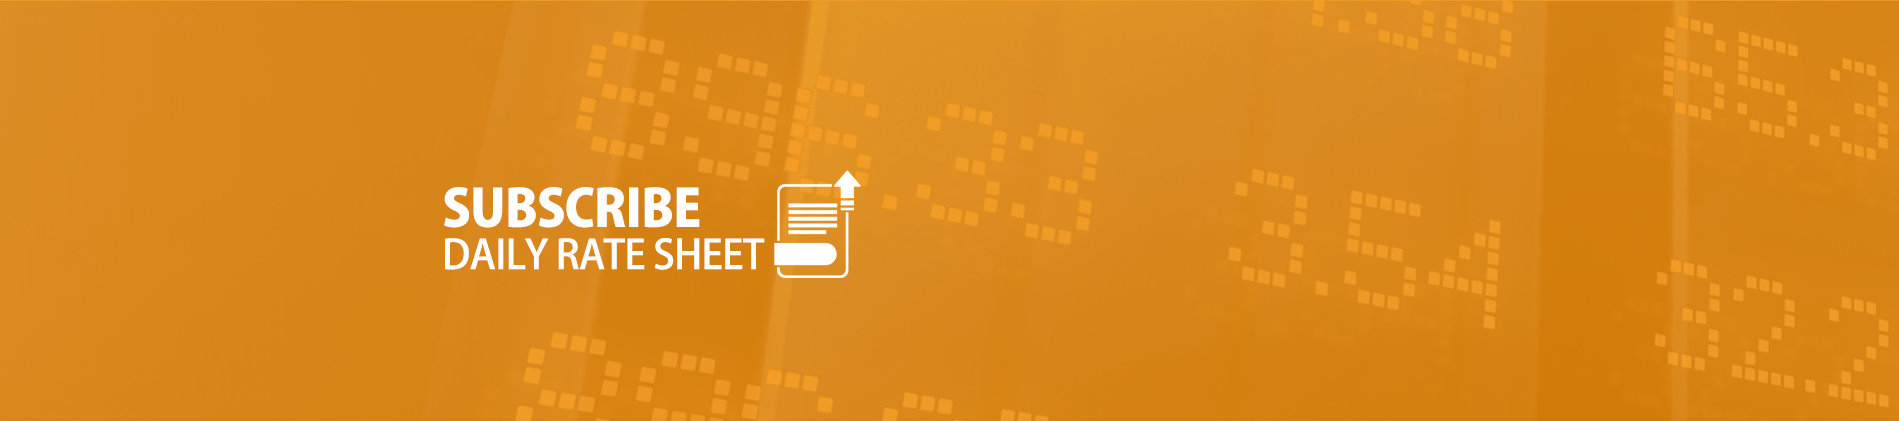 Orange Subscribe, Daily Rate Sheet image Banner